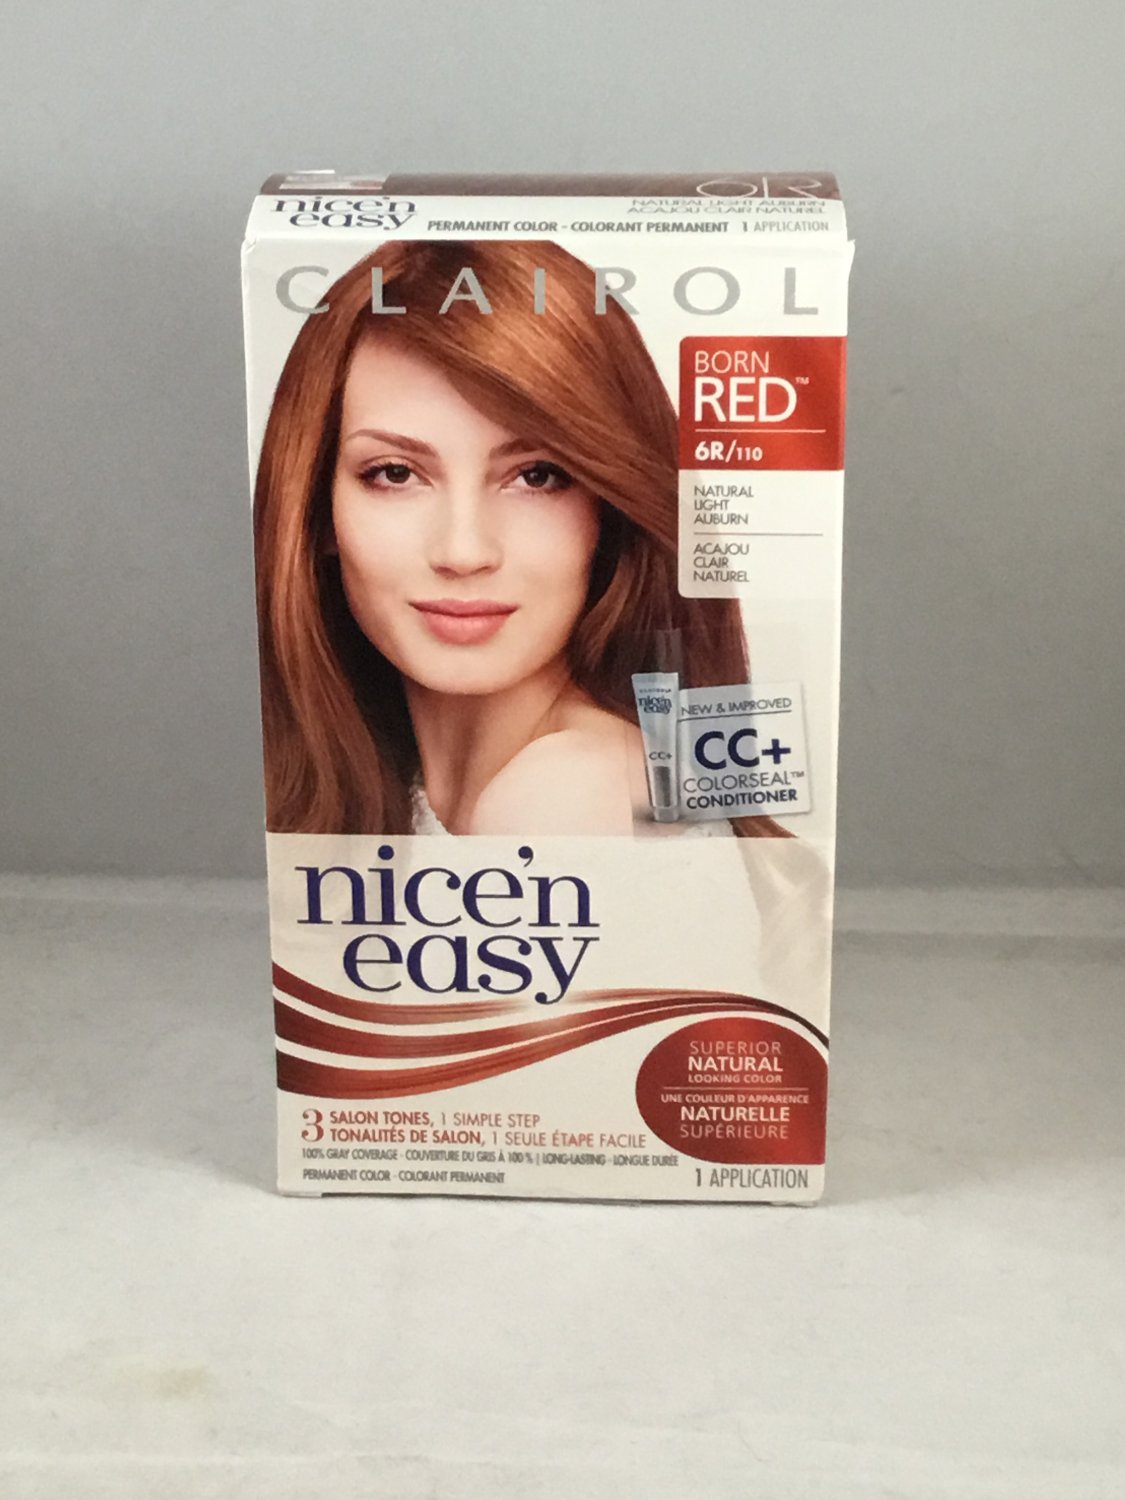 Clairol Nice 'N Easy Hair Color Born Red 6R / 110 Natural Light Auburn permanent dye creme